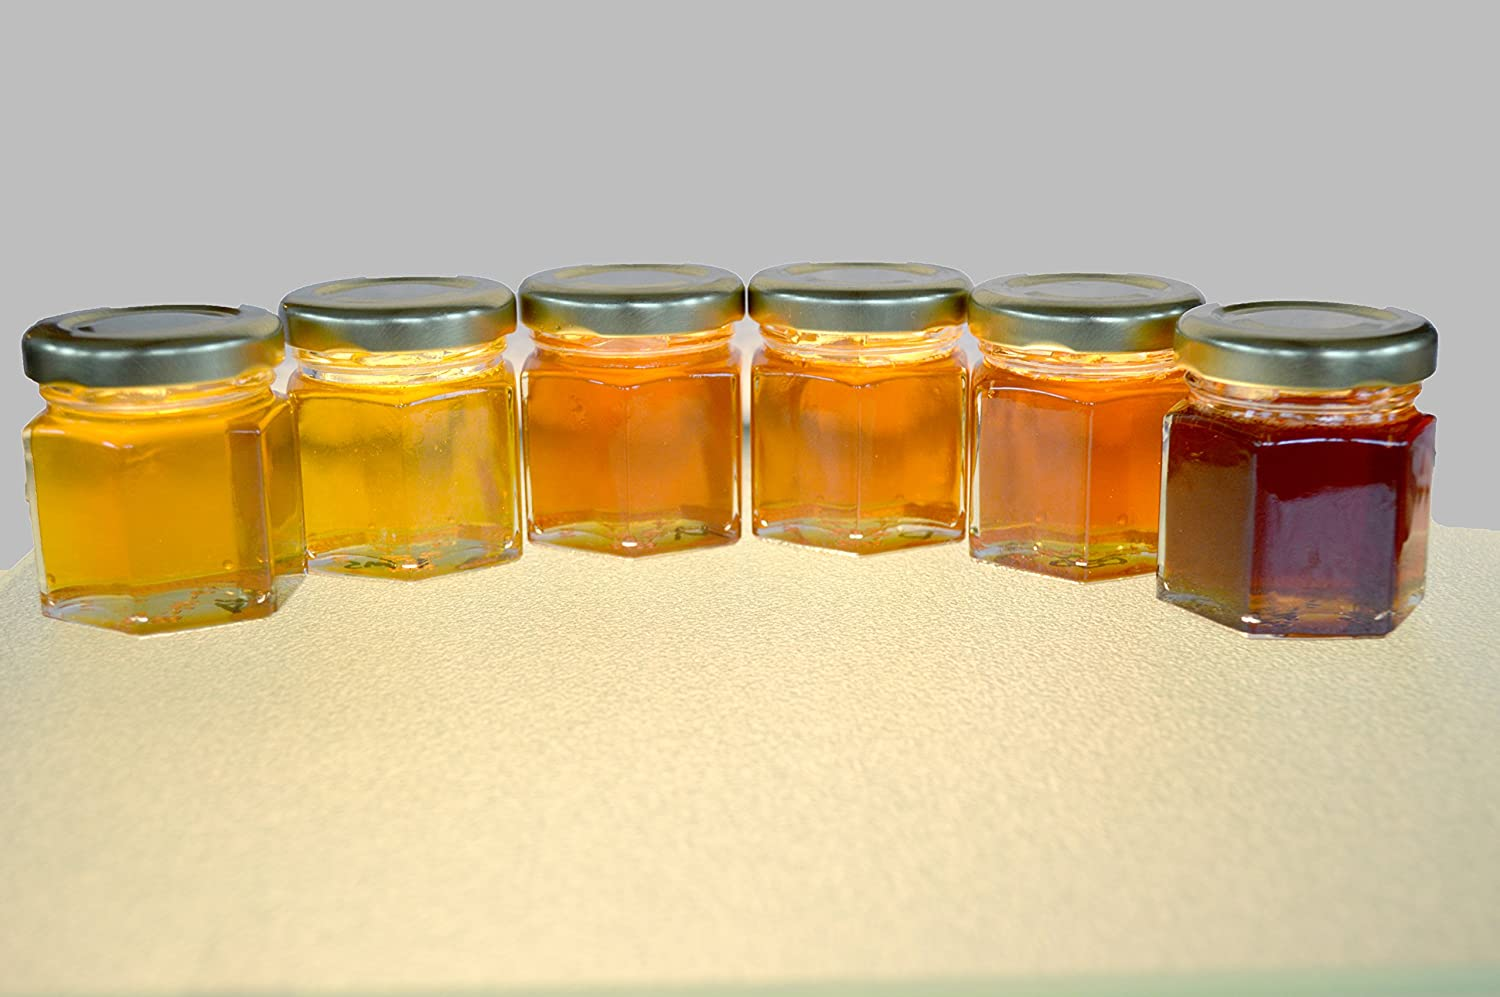 A Pure Raw Honey Gift Samplers of different Varietal Honey 6 (2 oz.) Jars, In Gift Box Black Bonnet Amish Farms 6-2oz